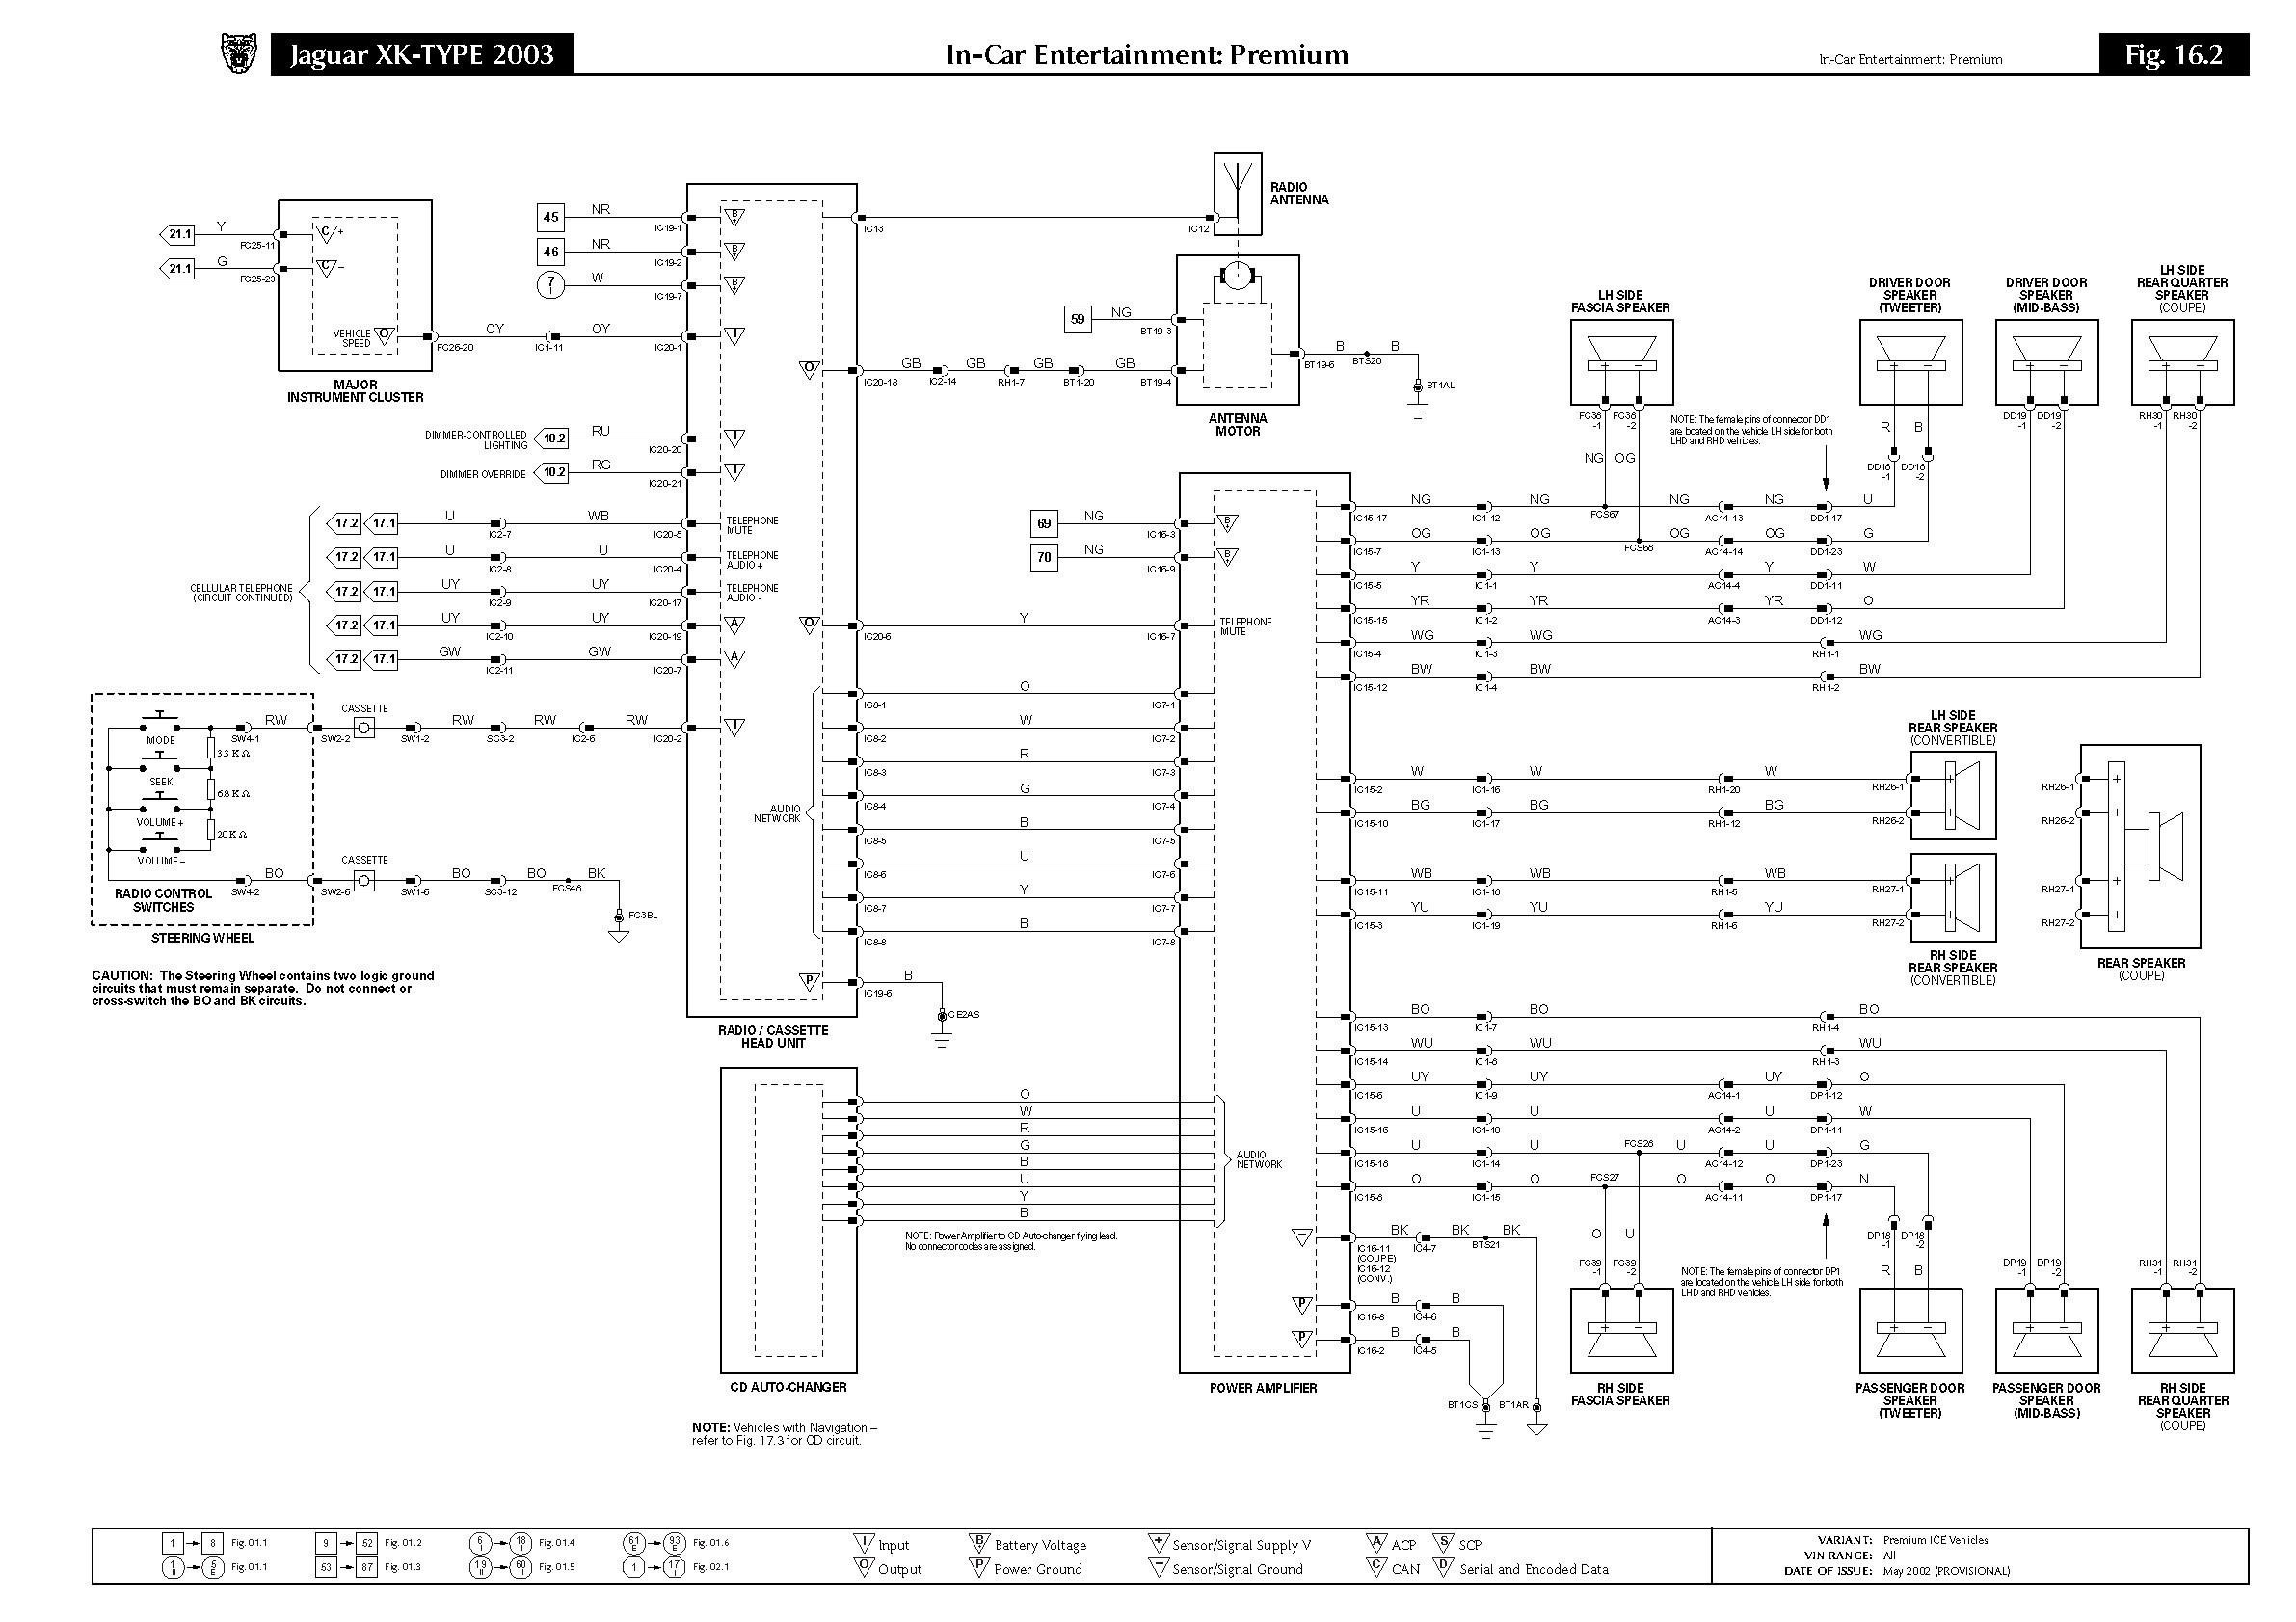 1990 Jaguar Xjs Wiring Diagram | Wiring Diagram on